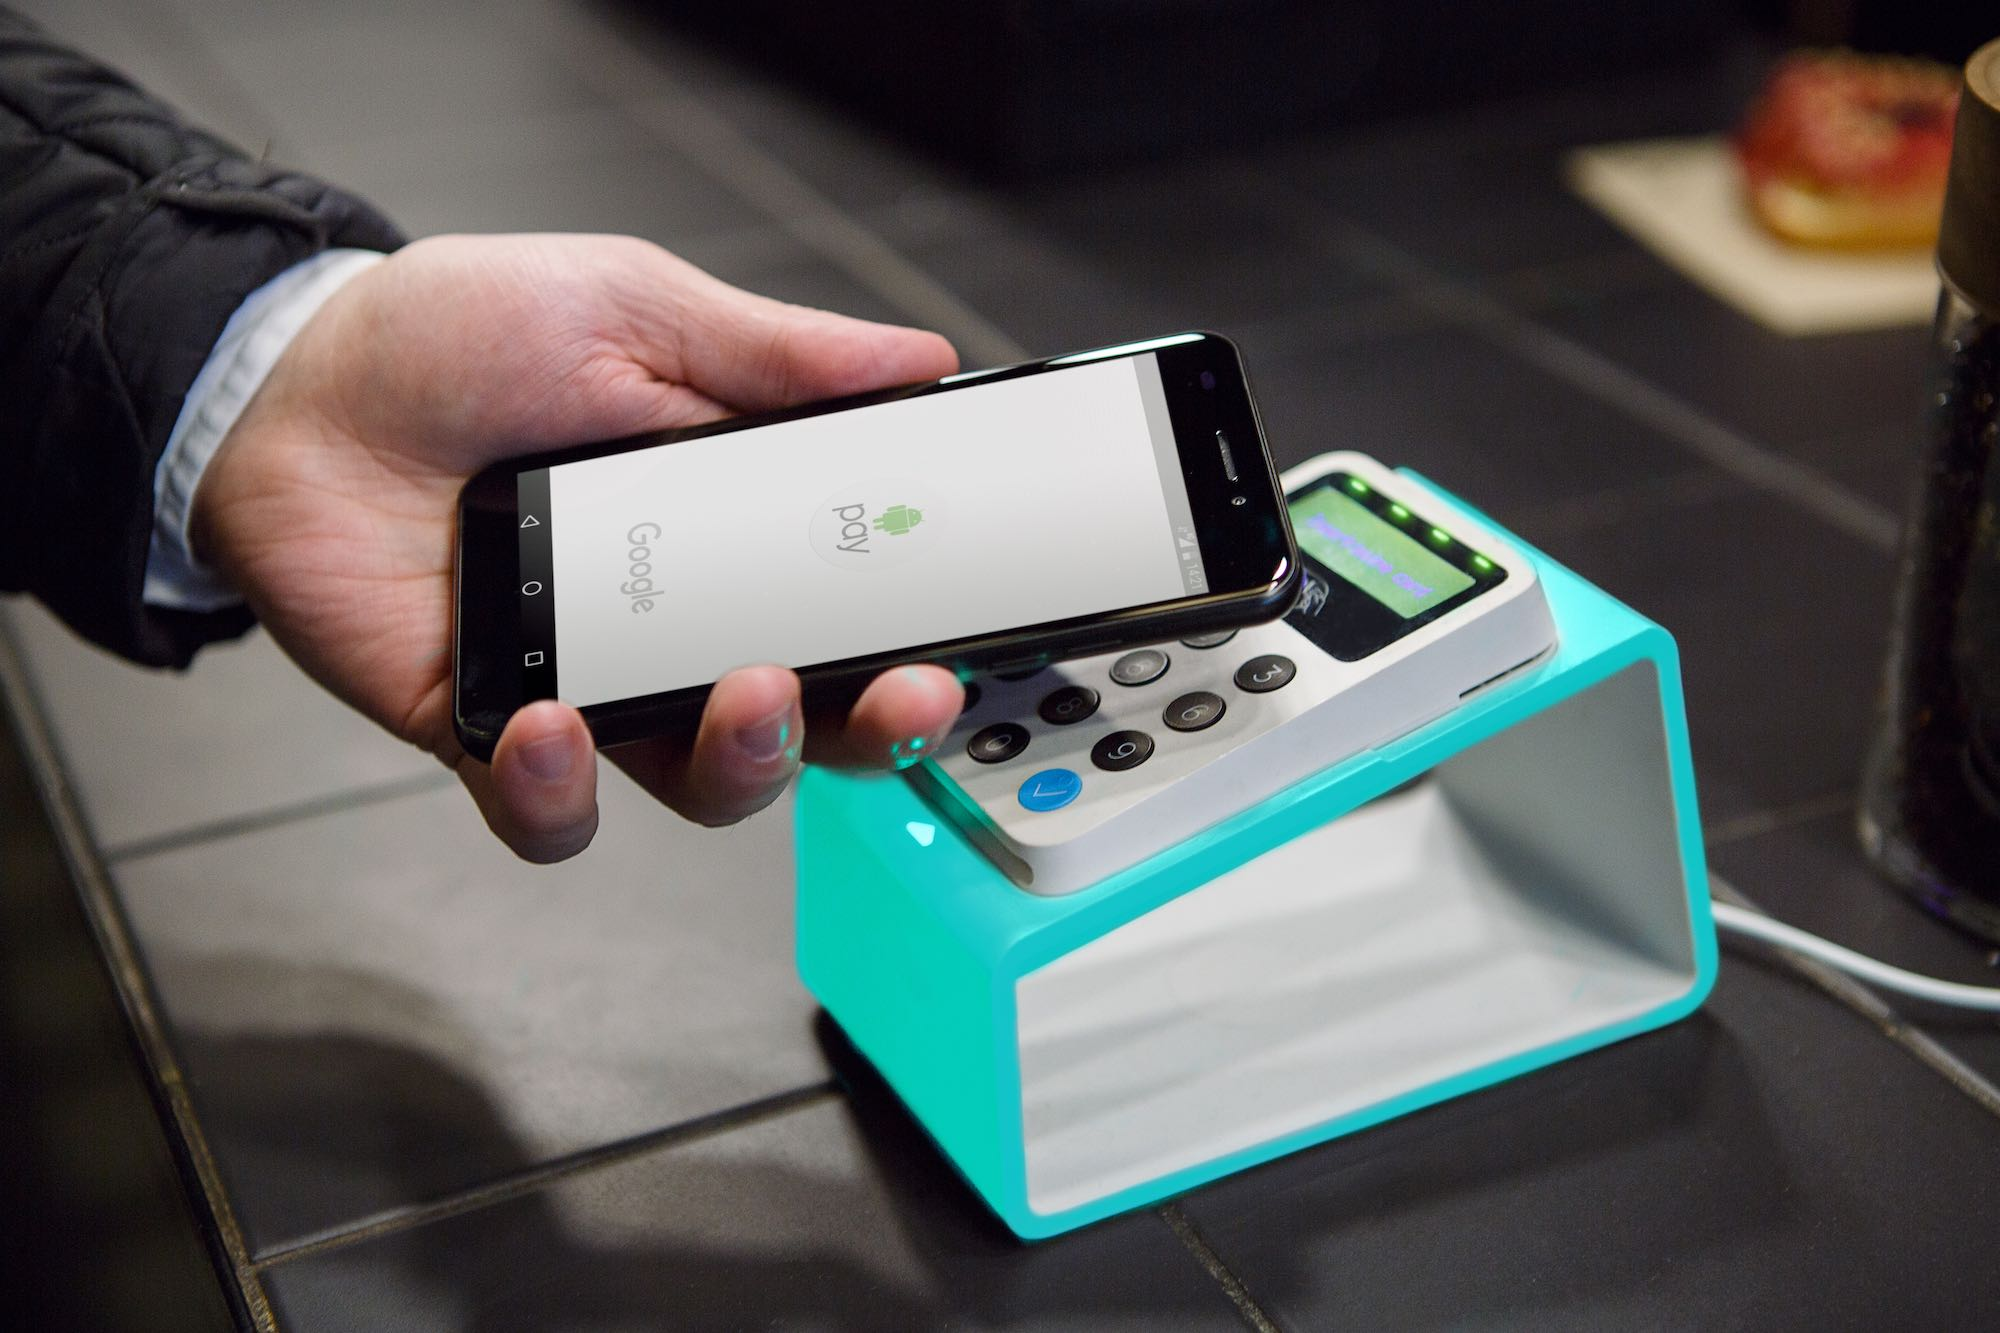 EE launches new wallet-friendly 4G+ Android smartphone with WiFi